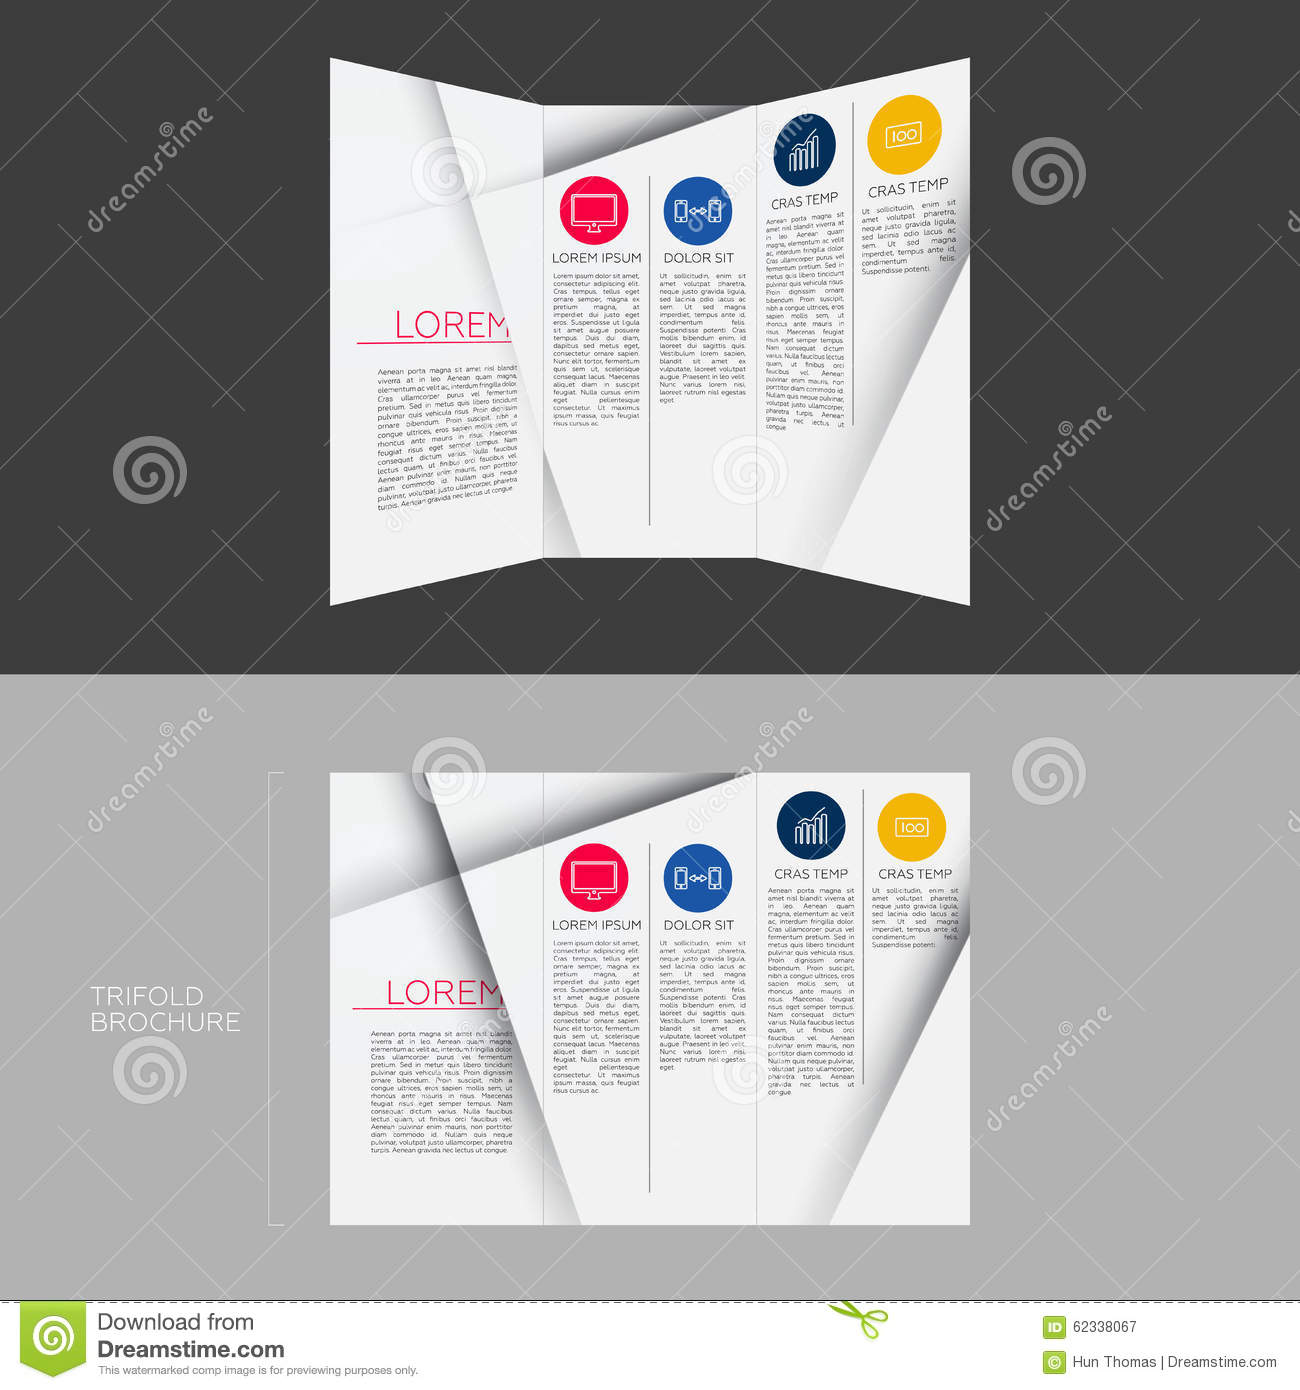 Trifold brochure template design in dl size stock for Dl brochure template